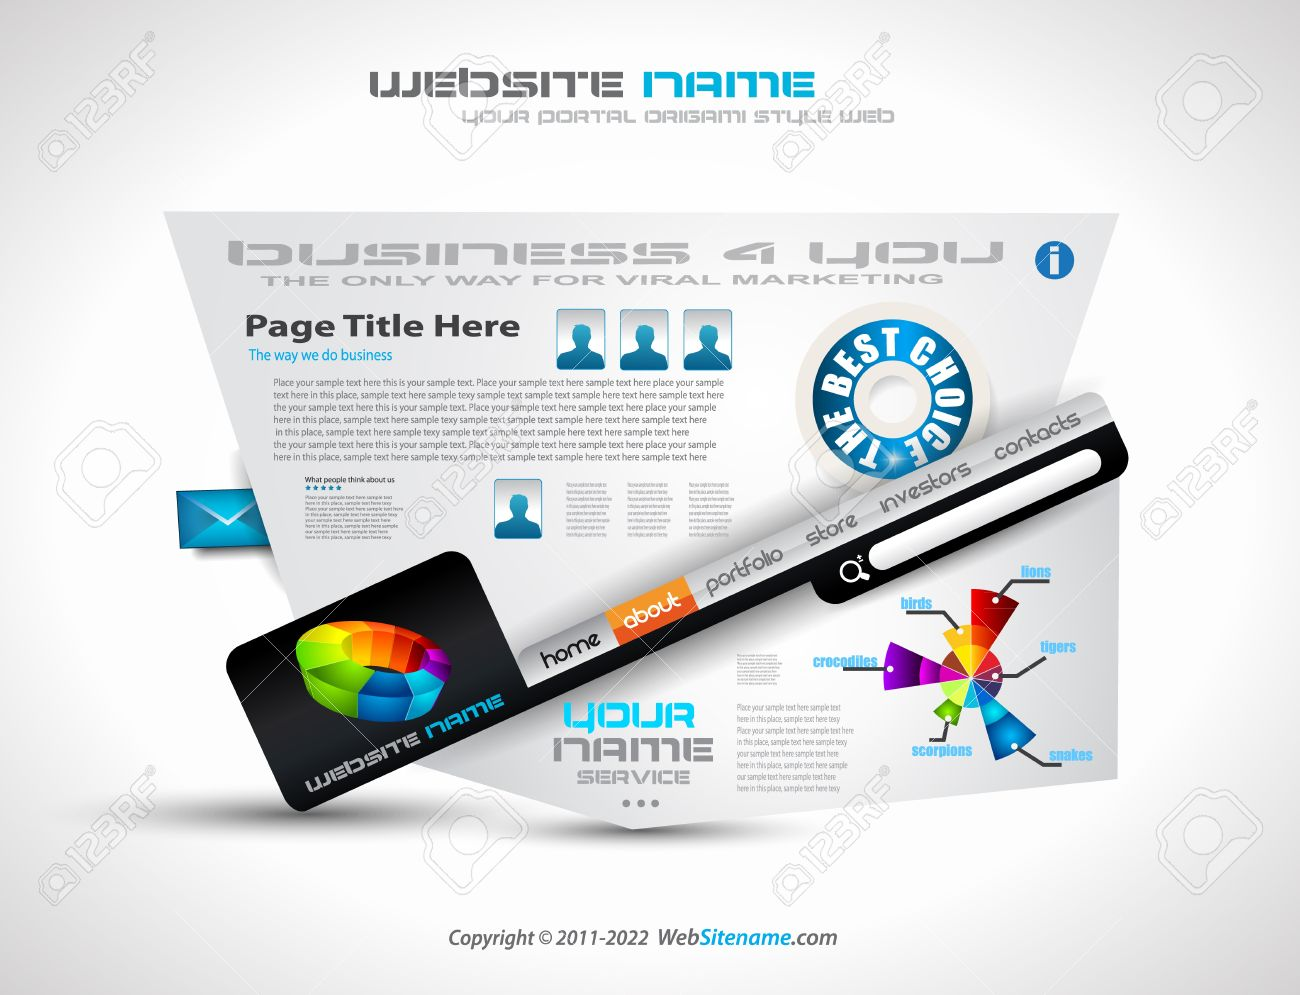 Complex Website Template - Elegant Design for Business Presentations. Template with a lot of design elements and infographics. Stock Vector - 12324057